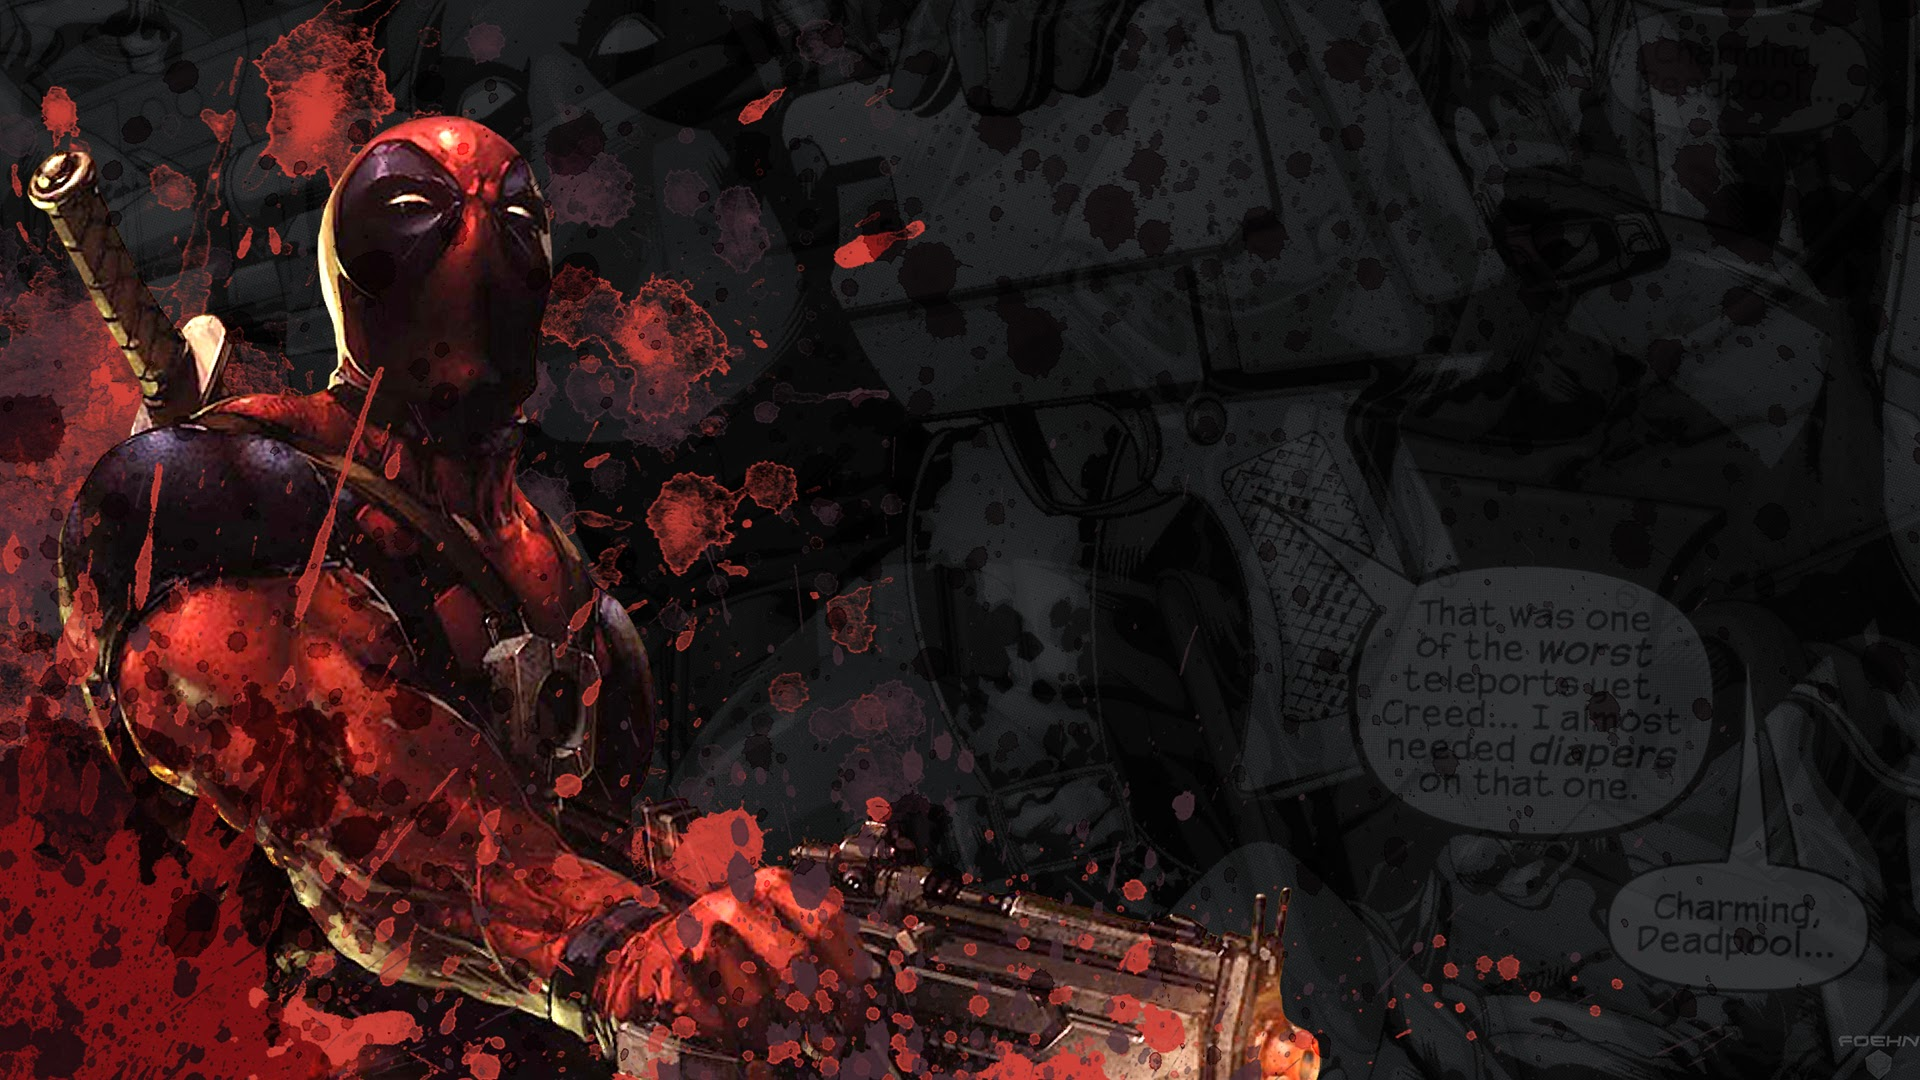 Deadpool Guns Marvel Comics HD Wallpaper 1920x1080 a76 1920x1080